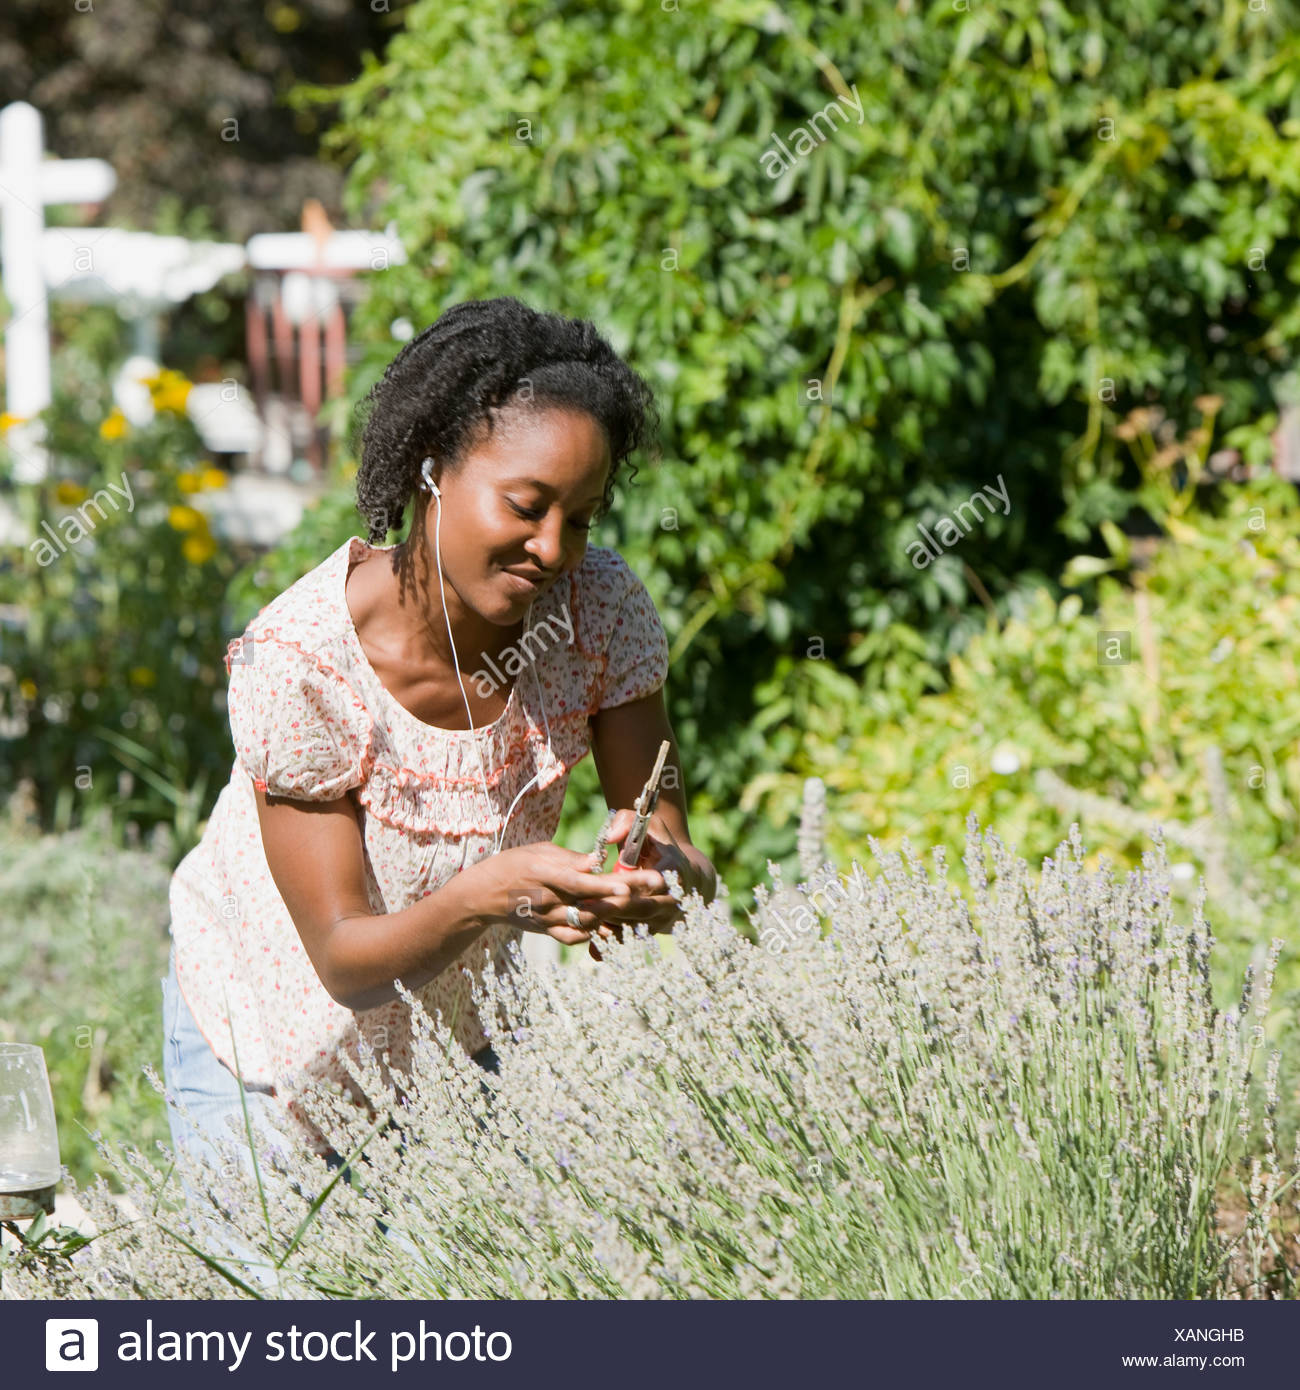 woman in the backyard listening to a digital music player - Stock Image